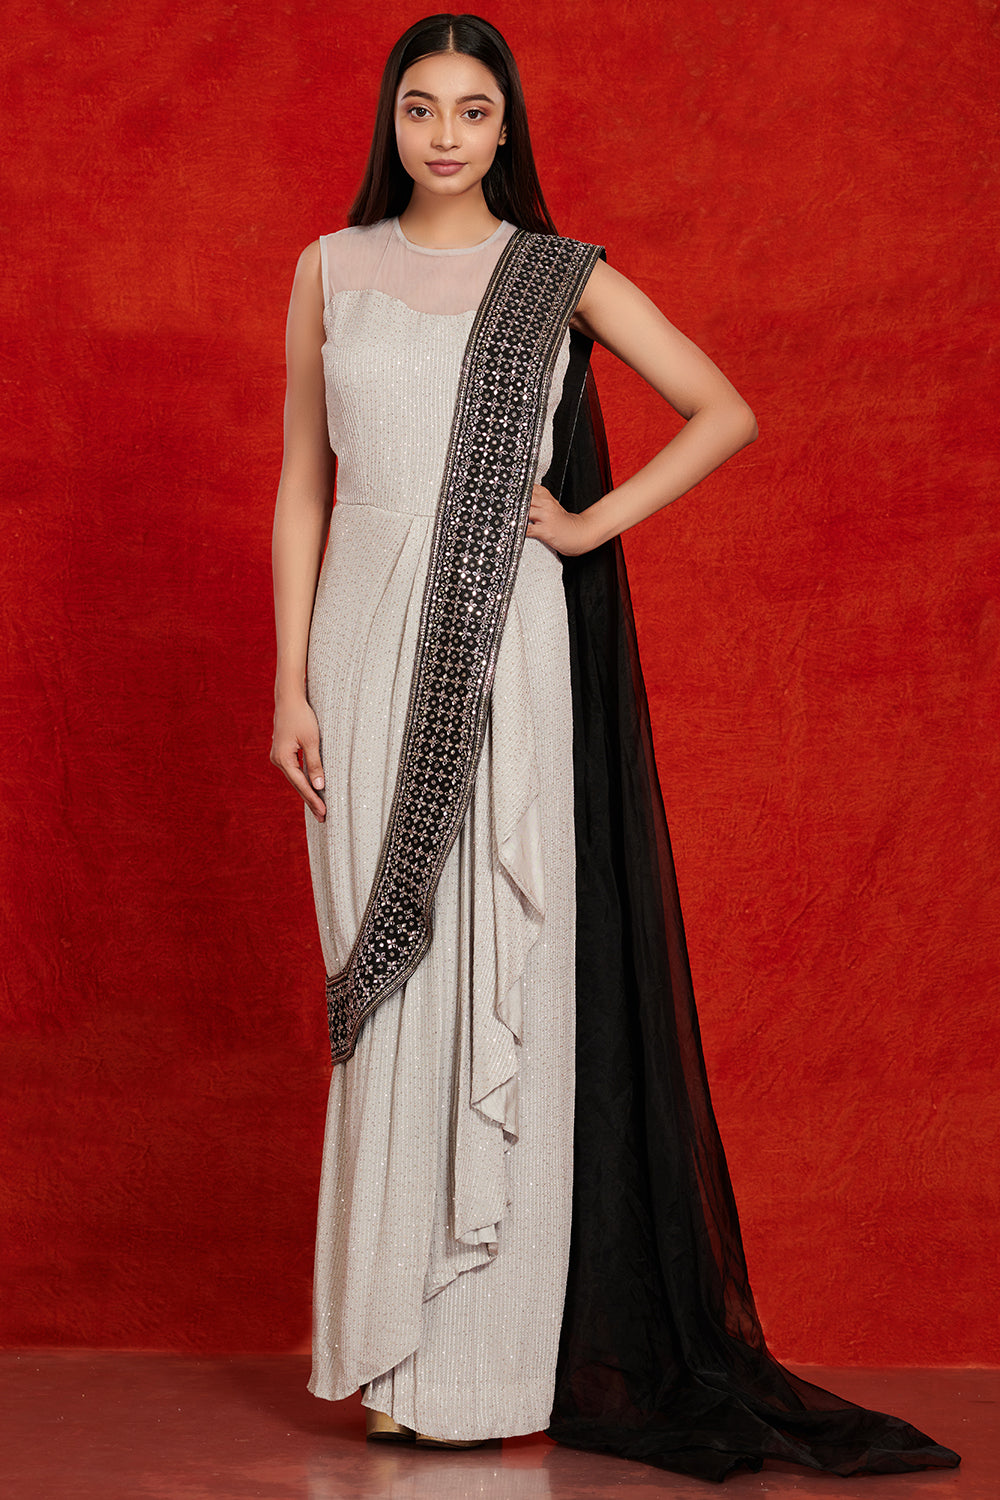 Buy stunning grey and black embellished saree gown online in USA. Make a fashion statement on festive occasions and weddings with palazzo suits, sharara suits, partywear dresses, salwar suits from Pure Elegance Indian fashion store in USA.-full view